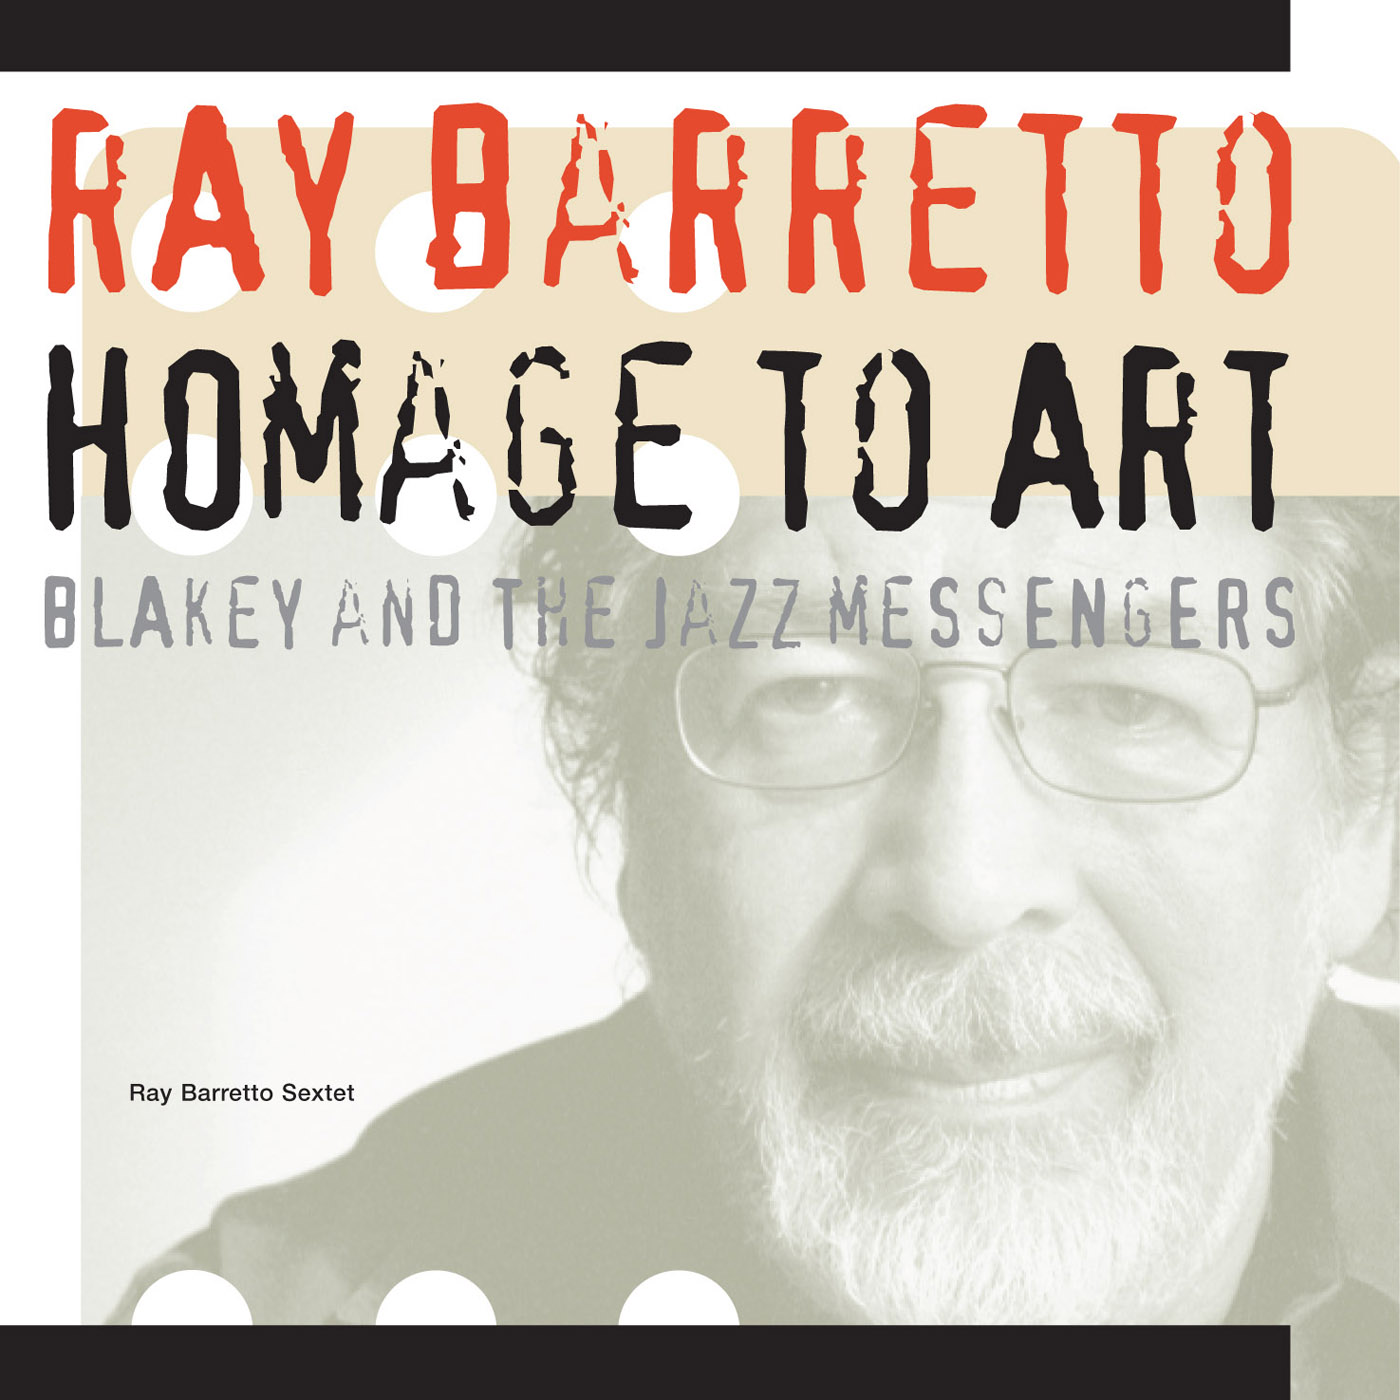 Homage to Art Blakey and The Jazz Messengers by Ray Barretto cover